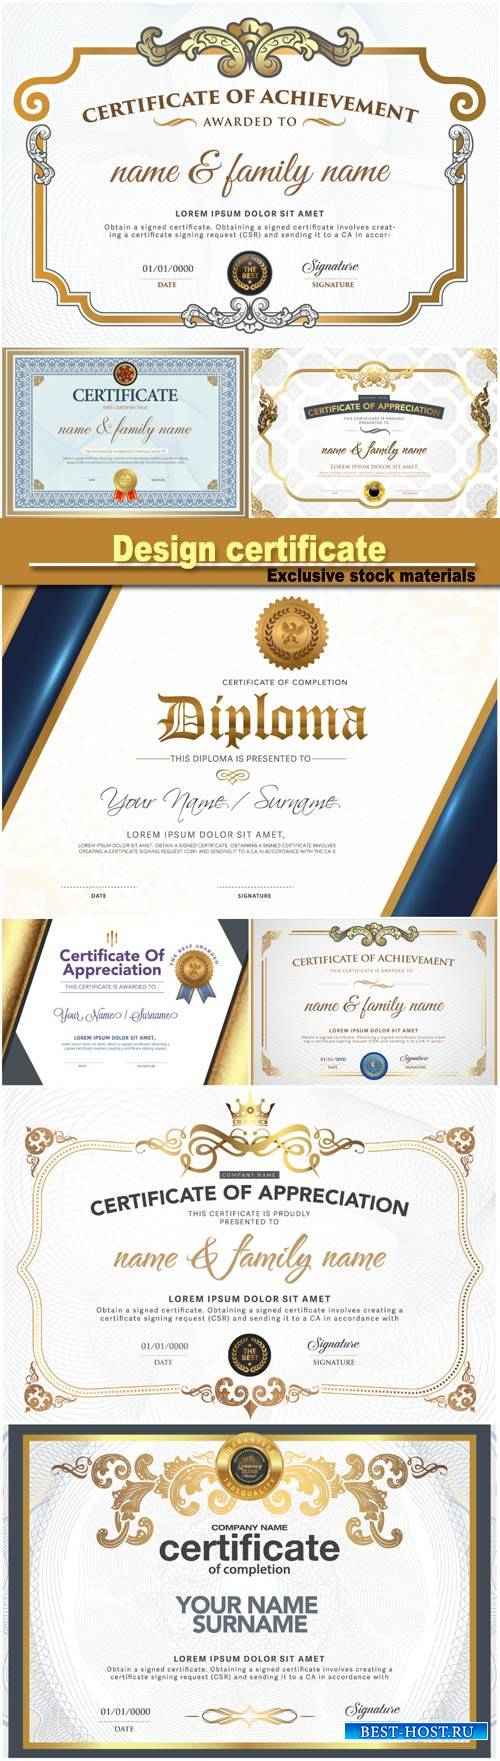 Design certificate, vector illustration